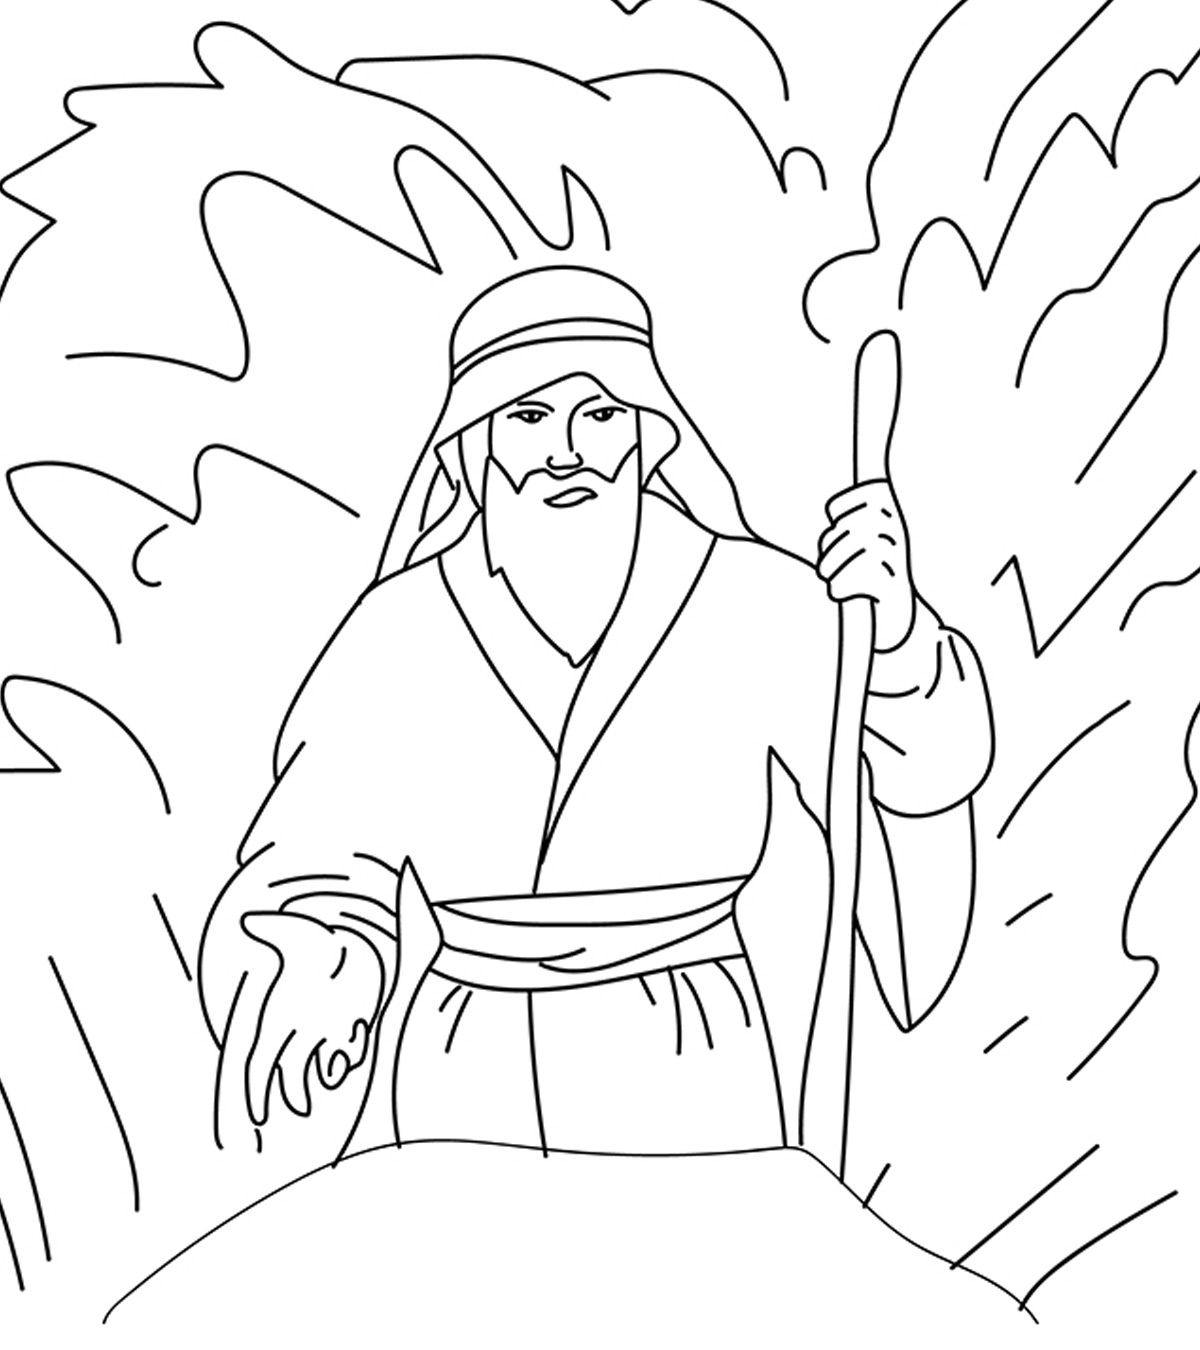 Christian Valentines Day Coloring Pages About Love Freeesus Loves ... | 1350x1200